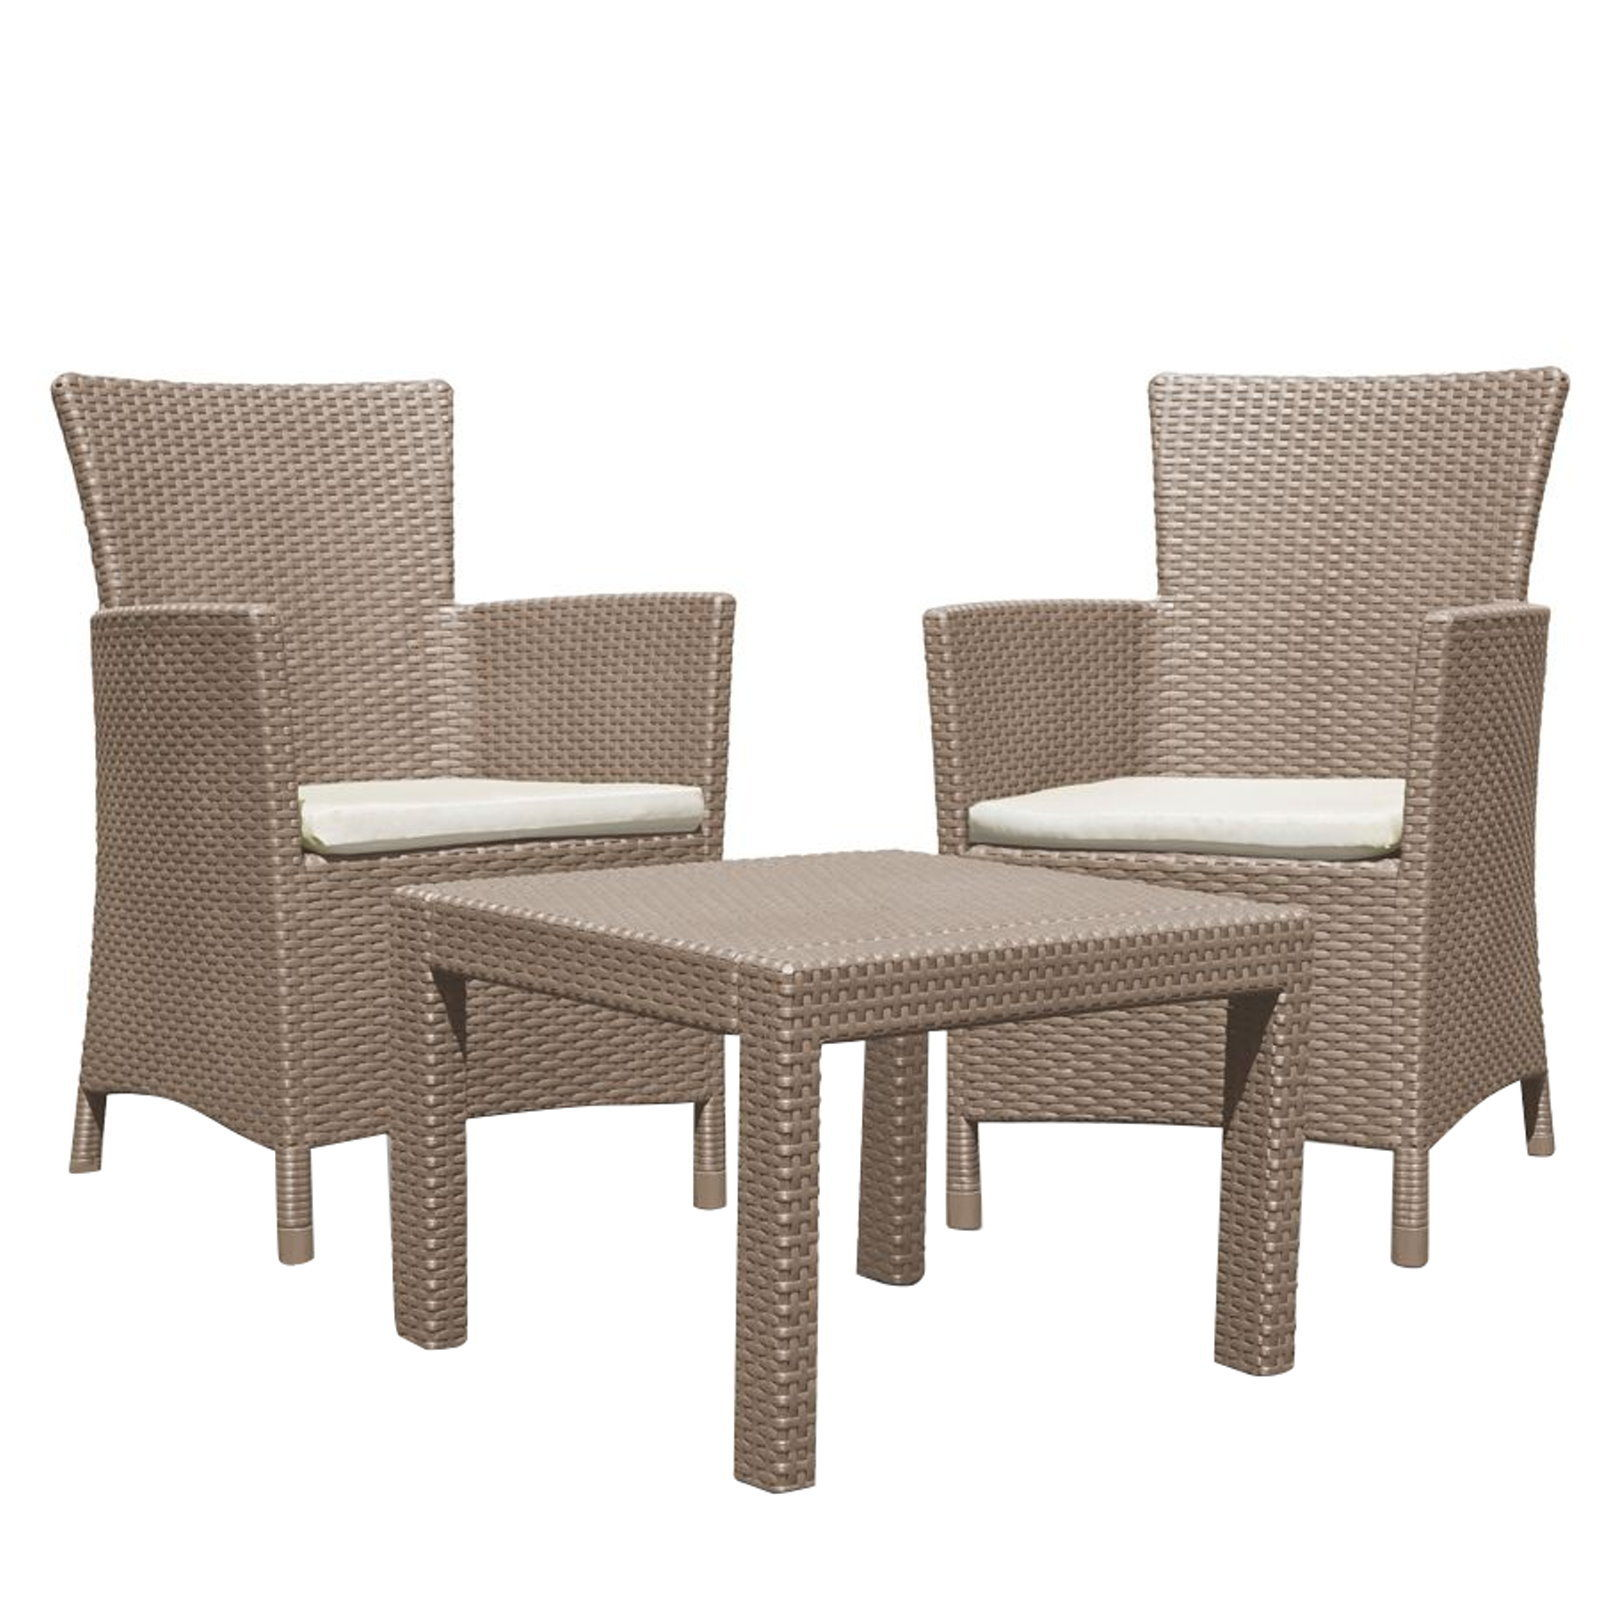 Loungemobel Rattan Amazon Beige Optik 3tlg Lounge Sitzgruppe